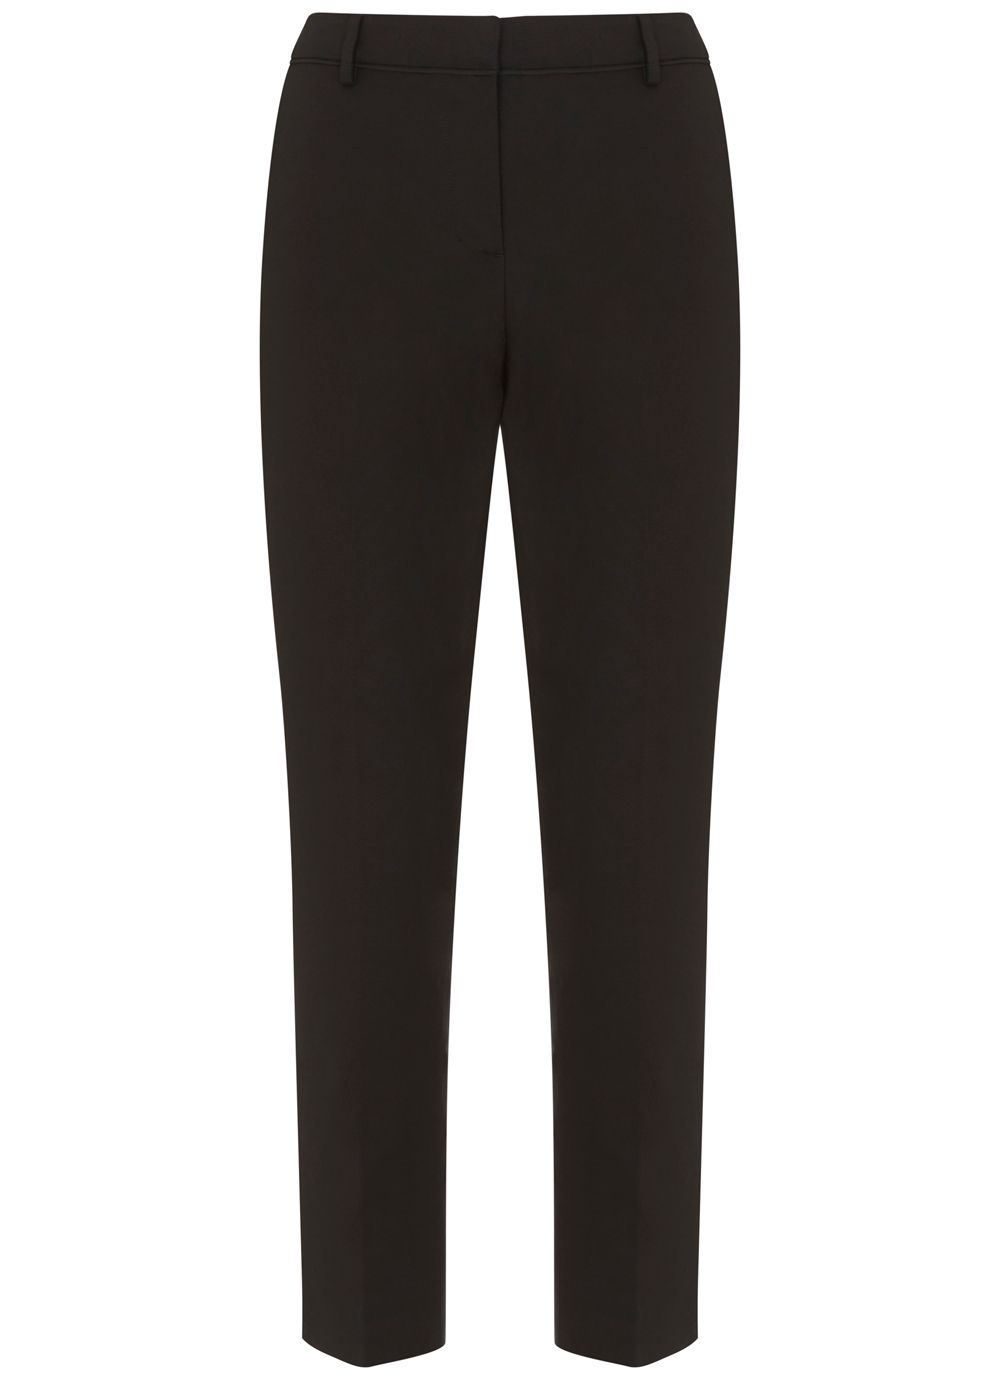 Mint Velvet Black Stretch Cropped Trouser, Black